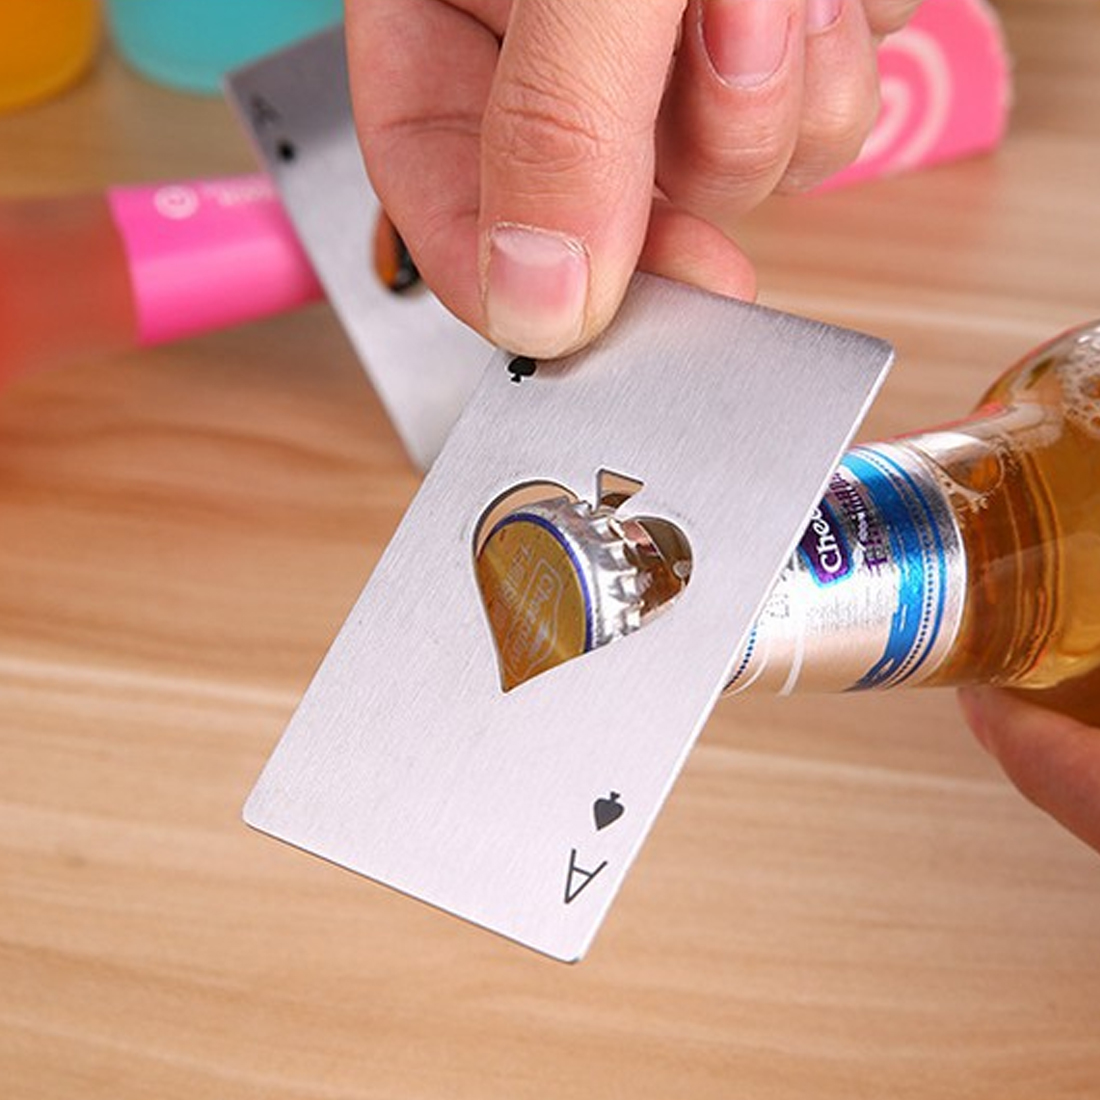 Cool 1Pc New Stylish Poker Playing Card A Of Spades Bar Tool Soda Beer Bottle Cap Opener High Quality